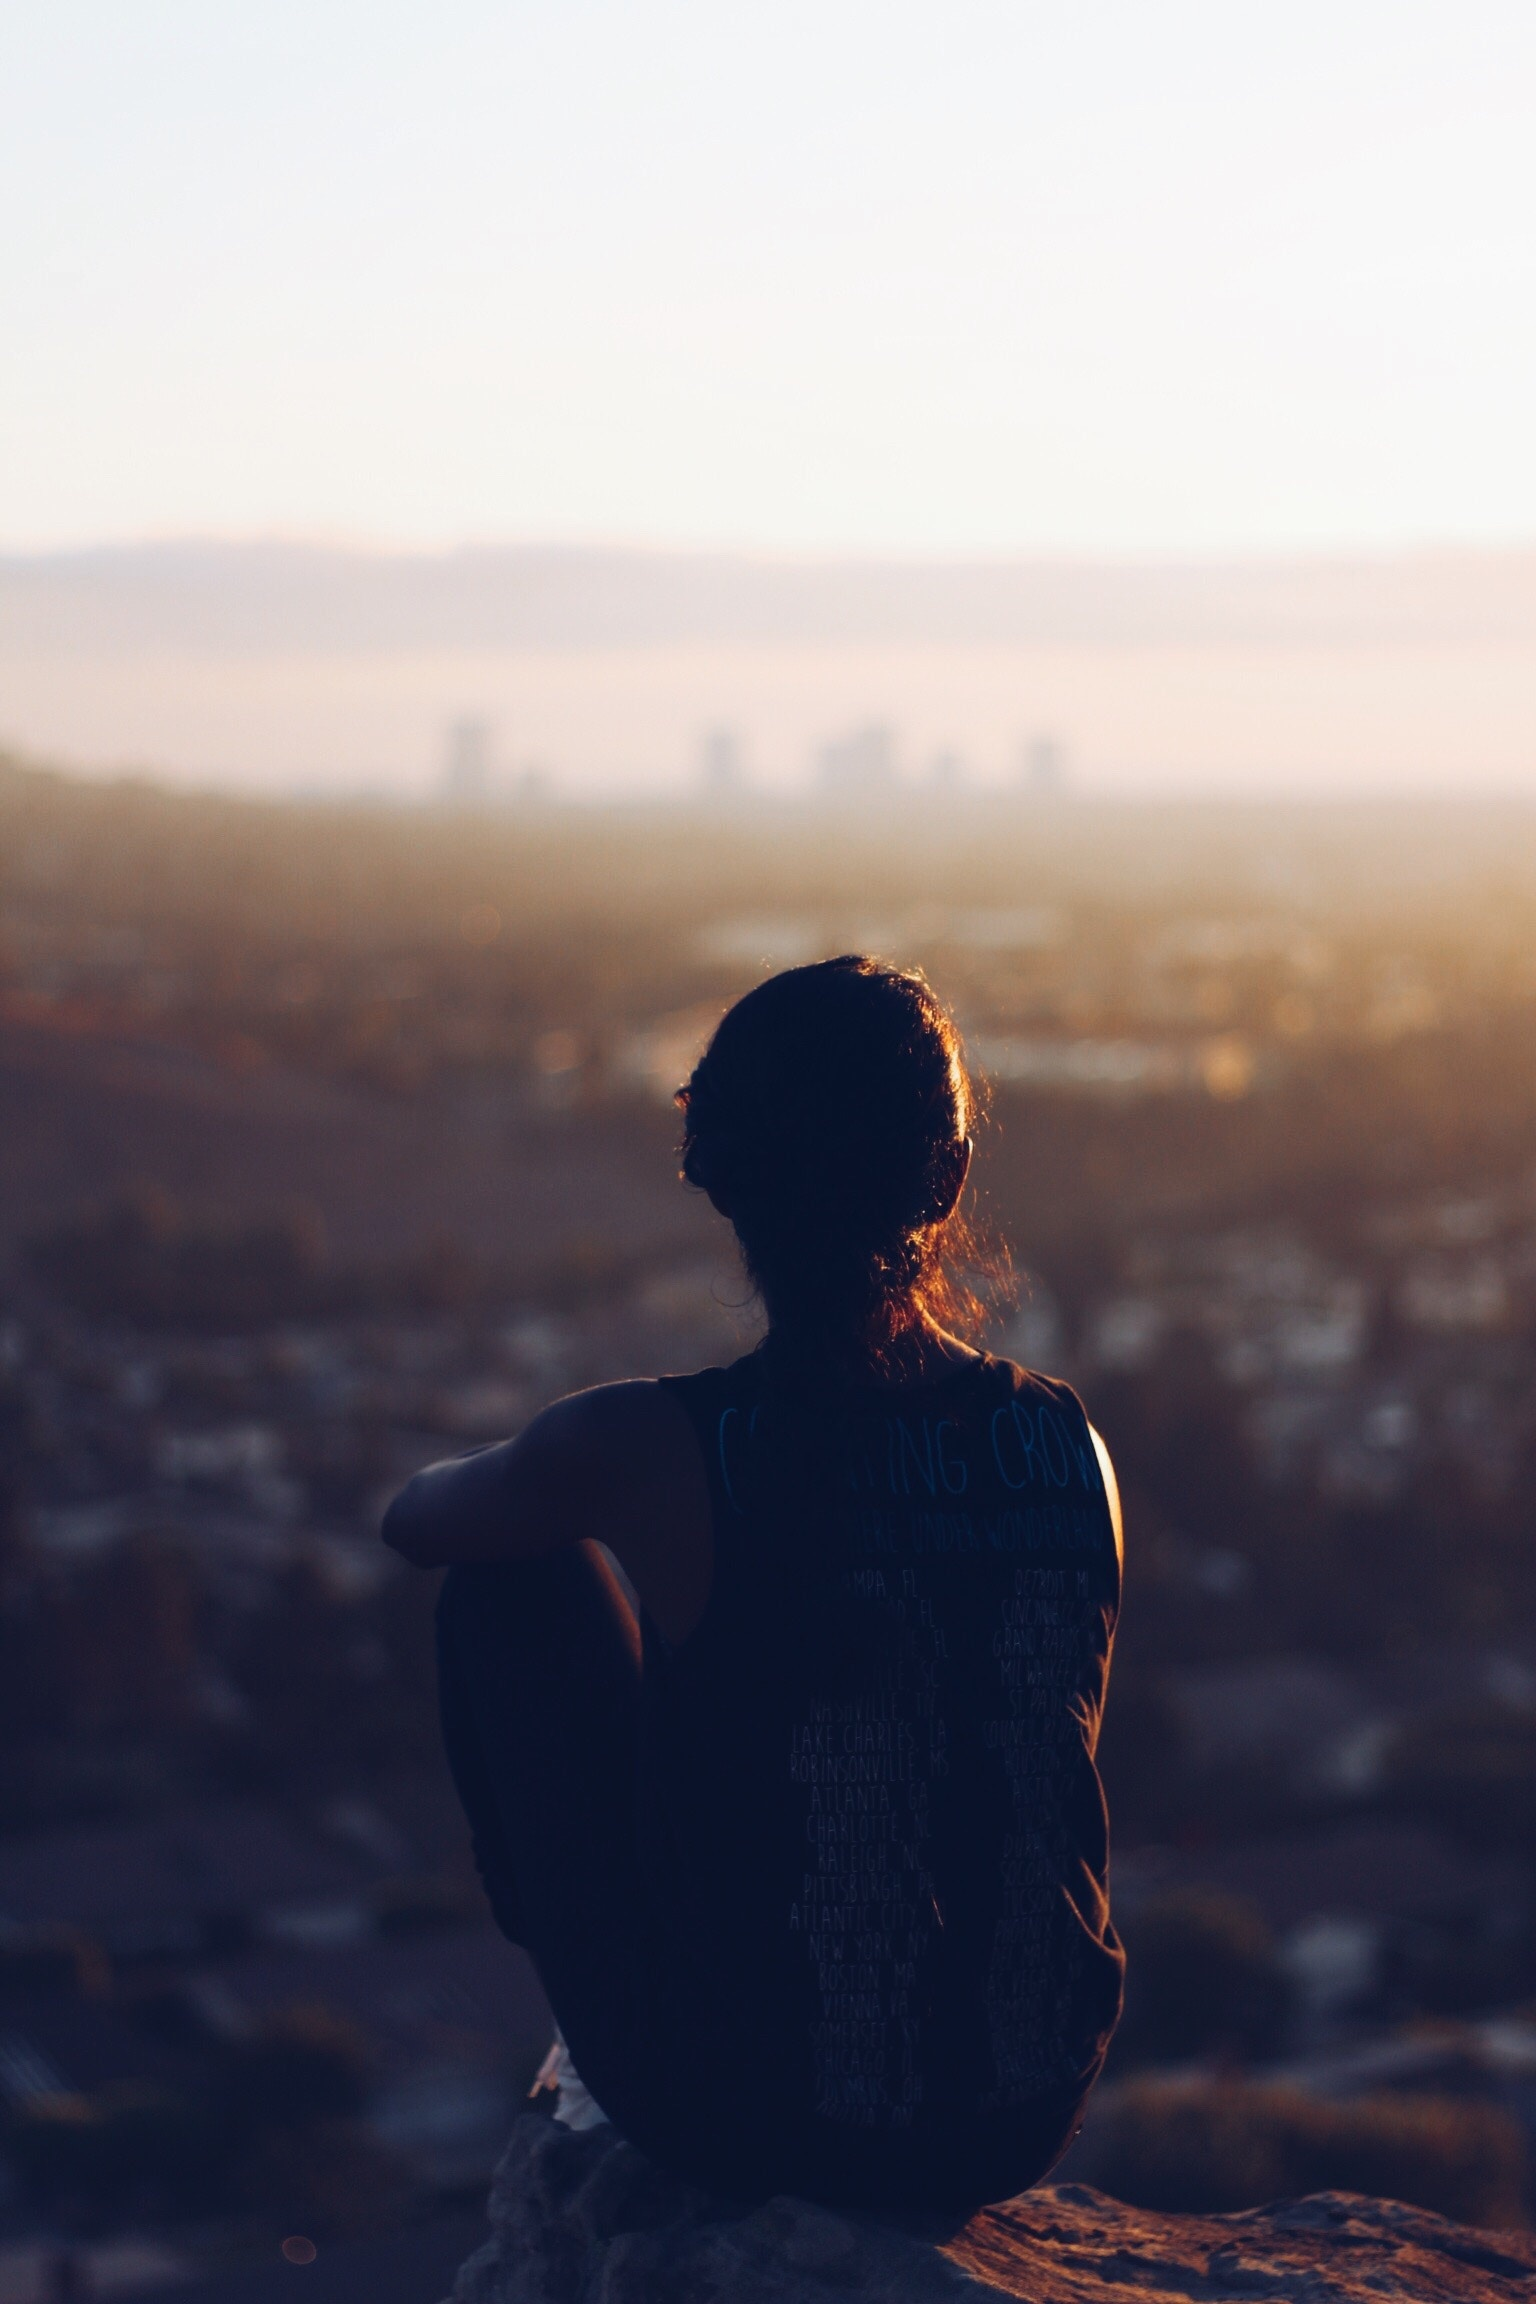 Woman sitting on a high hill overlooking a city, getting some rest